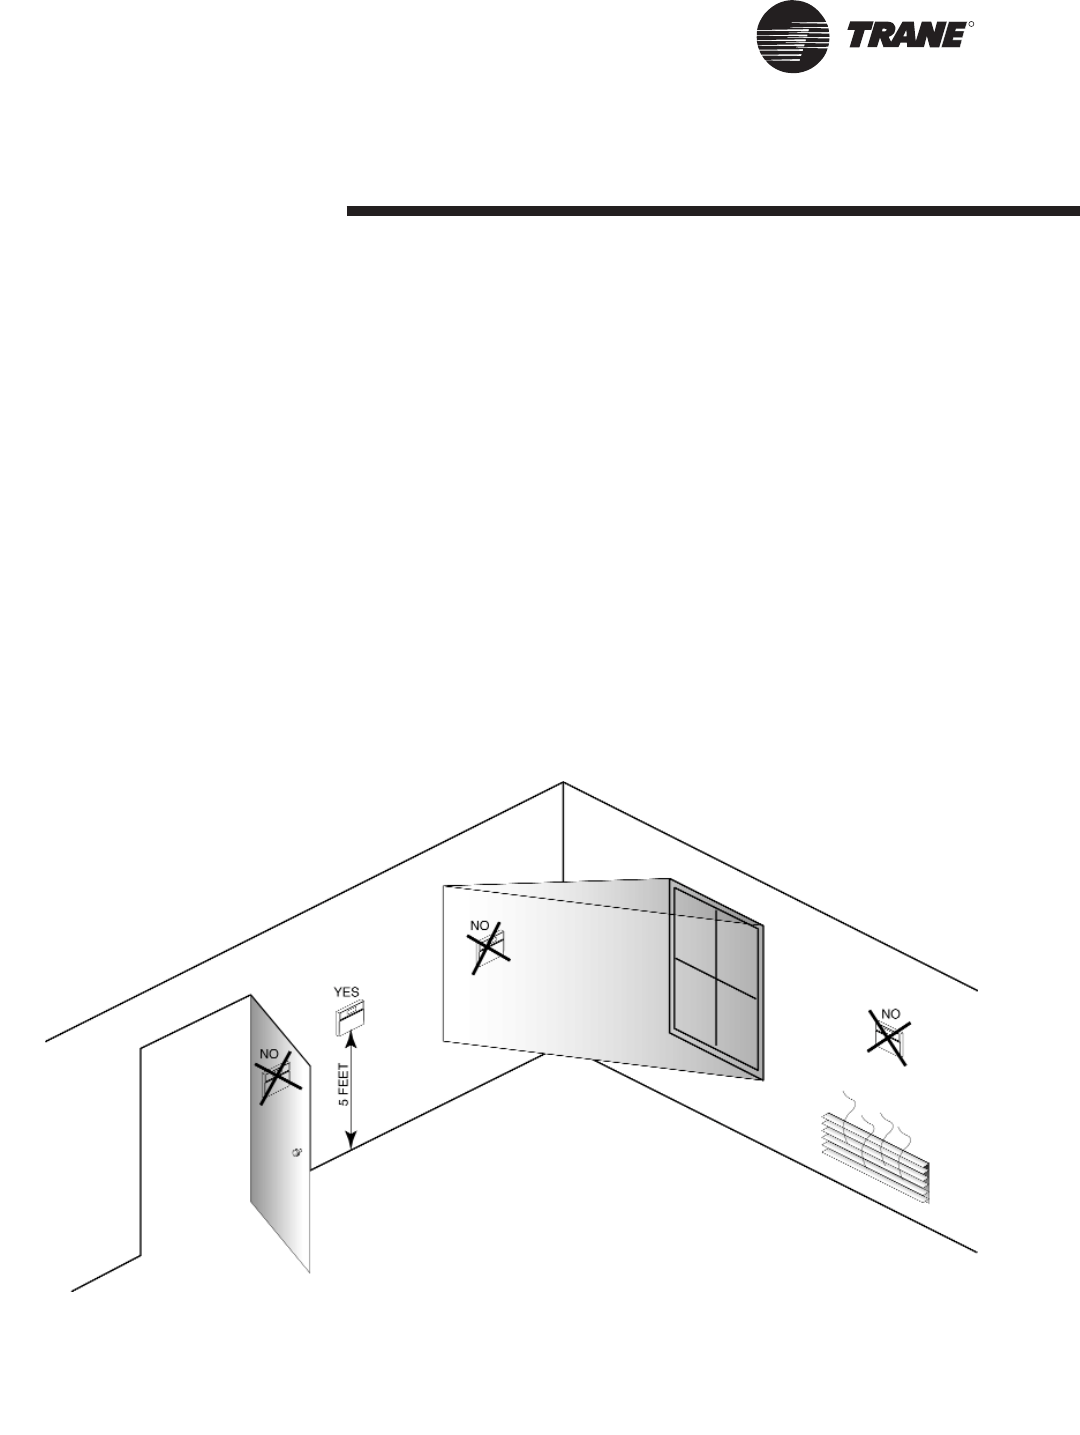 House Thermostat Location